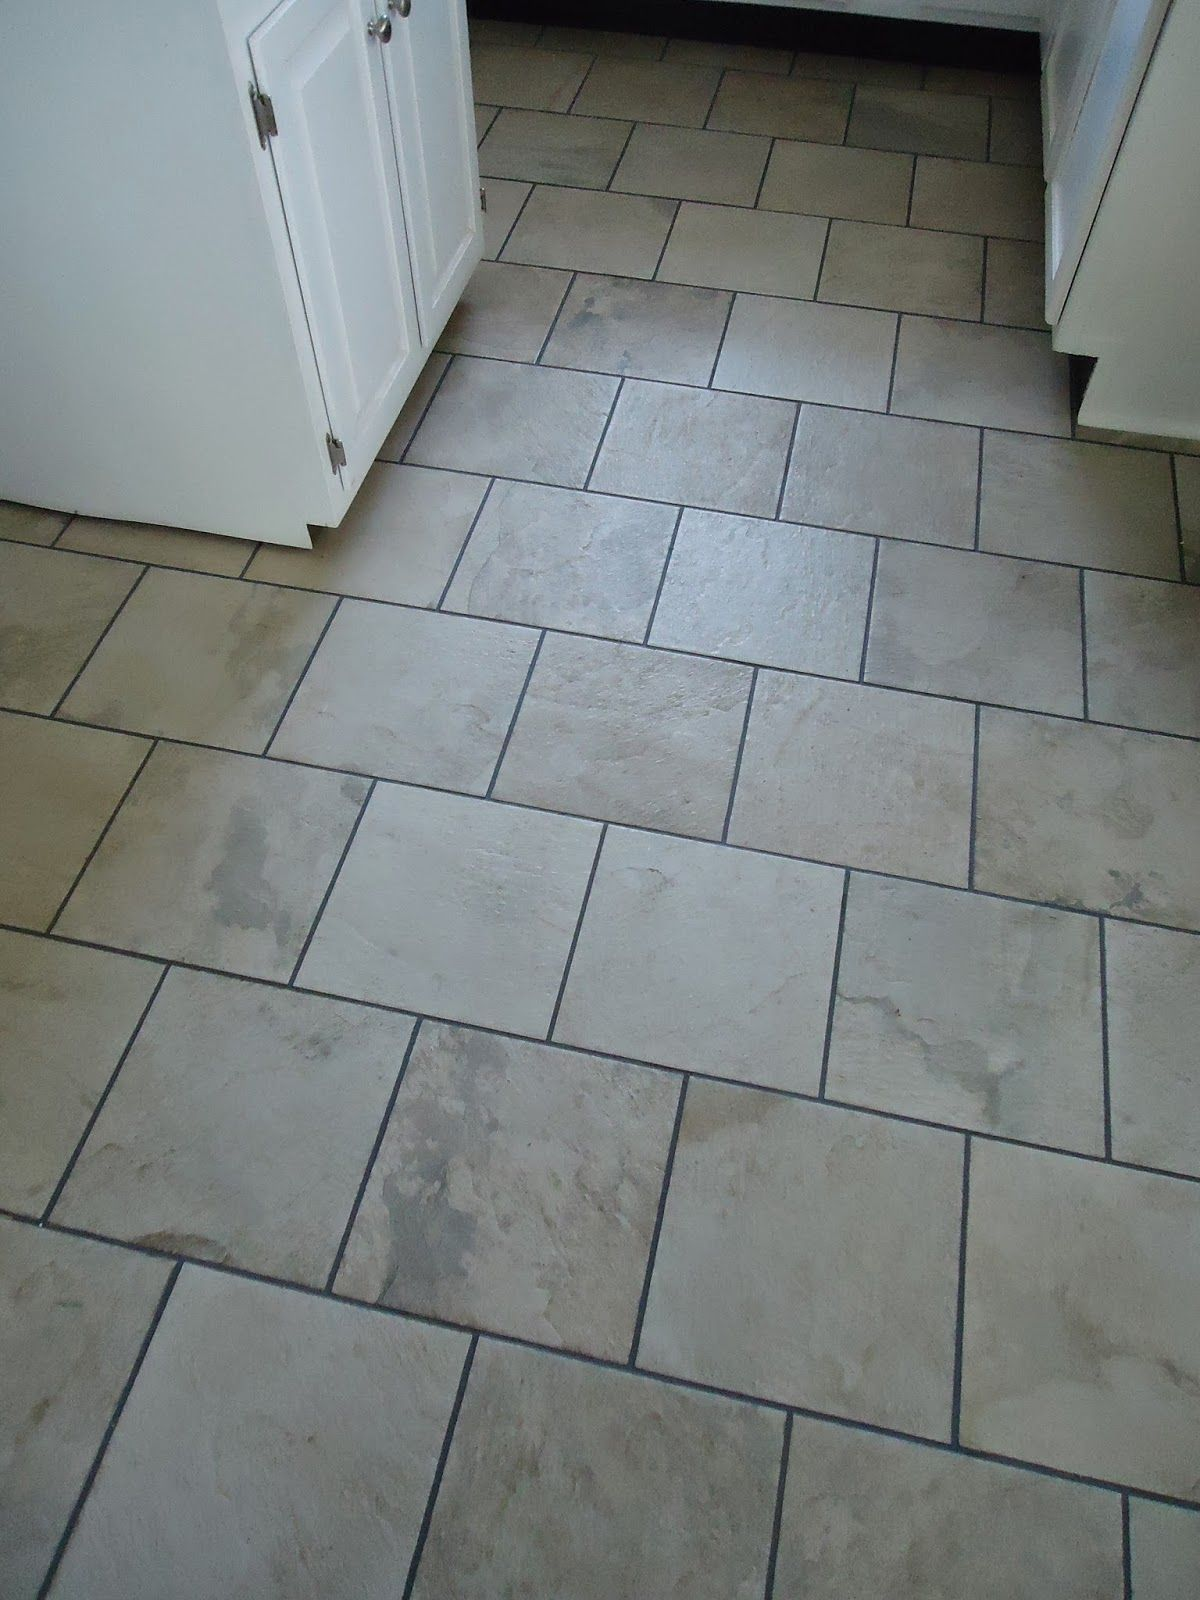 How To Change The Color Of Your Tile Grout Without Removing Quick Easy And Takes Only A Hours